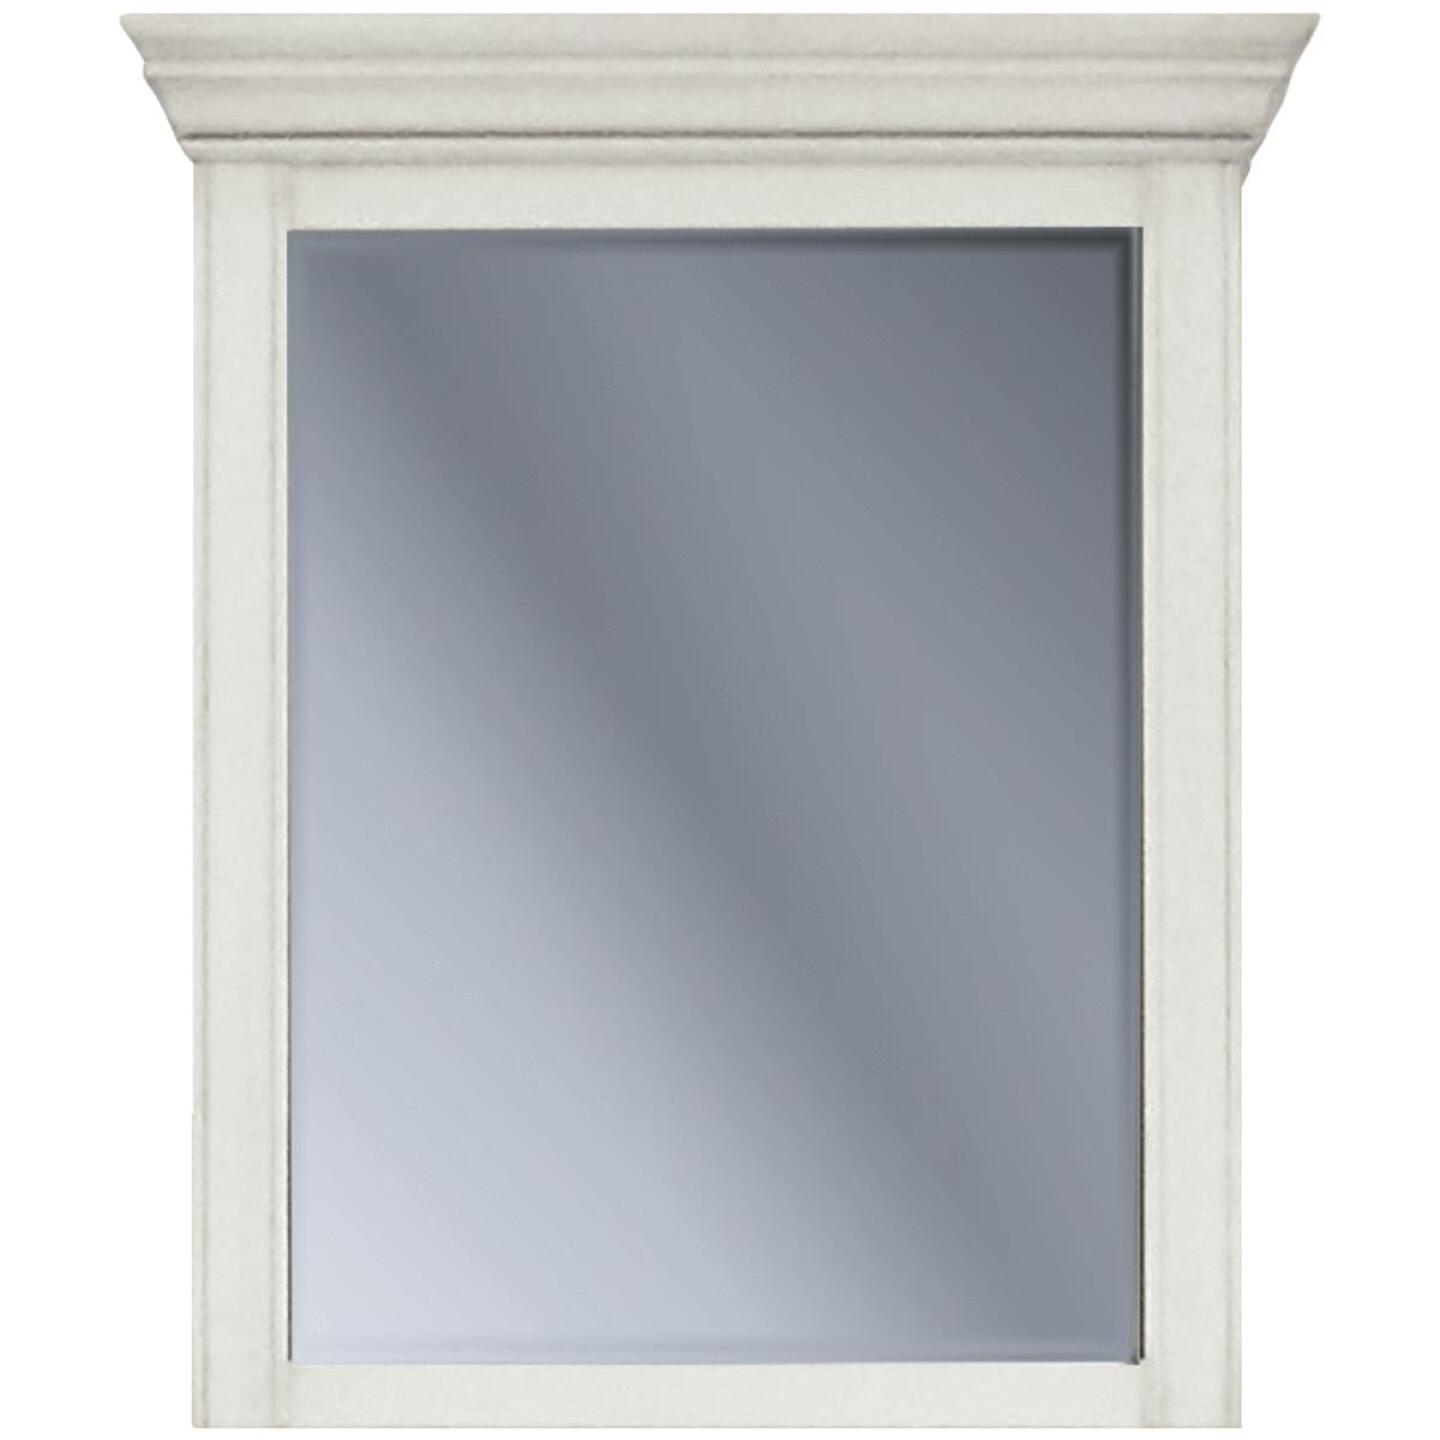 Sunny Wood Bristol Beach White 27 In. W x 32 In. H x 6-1/2 In. D Single Mirror Surface Mount Medicine Cabinet Image 1